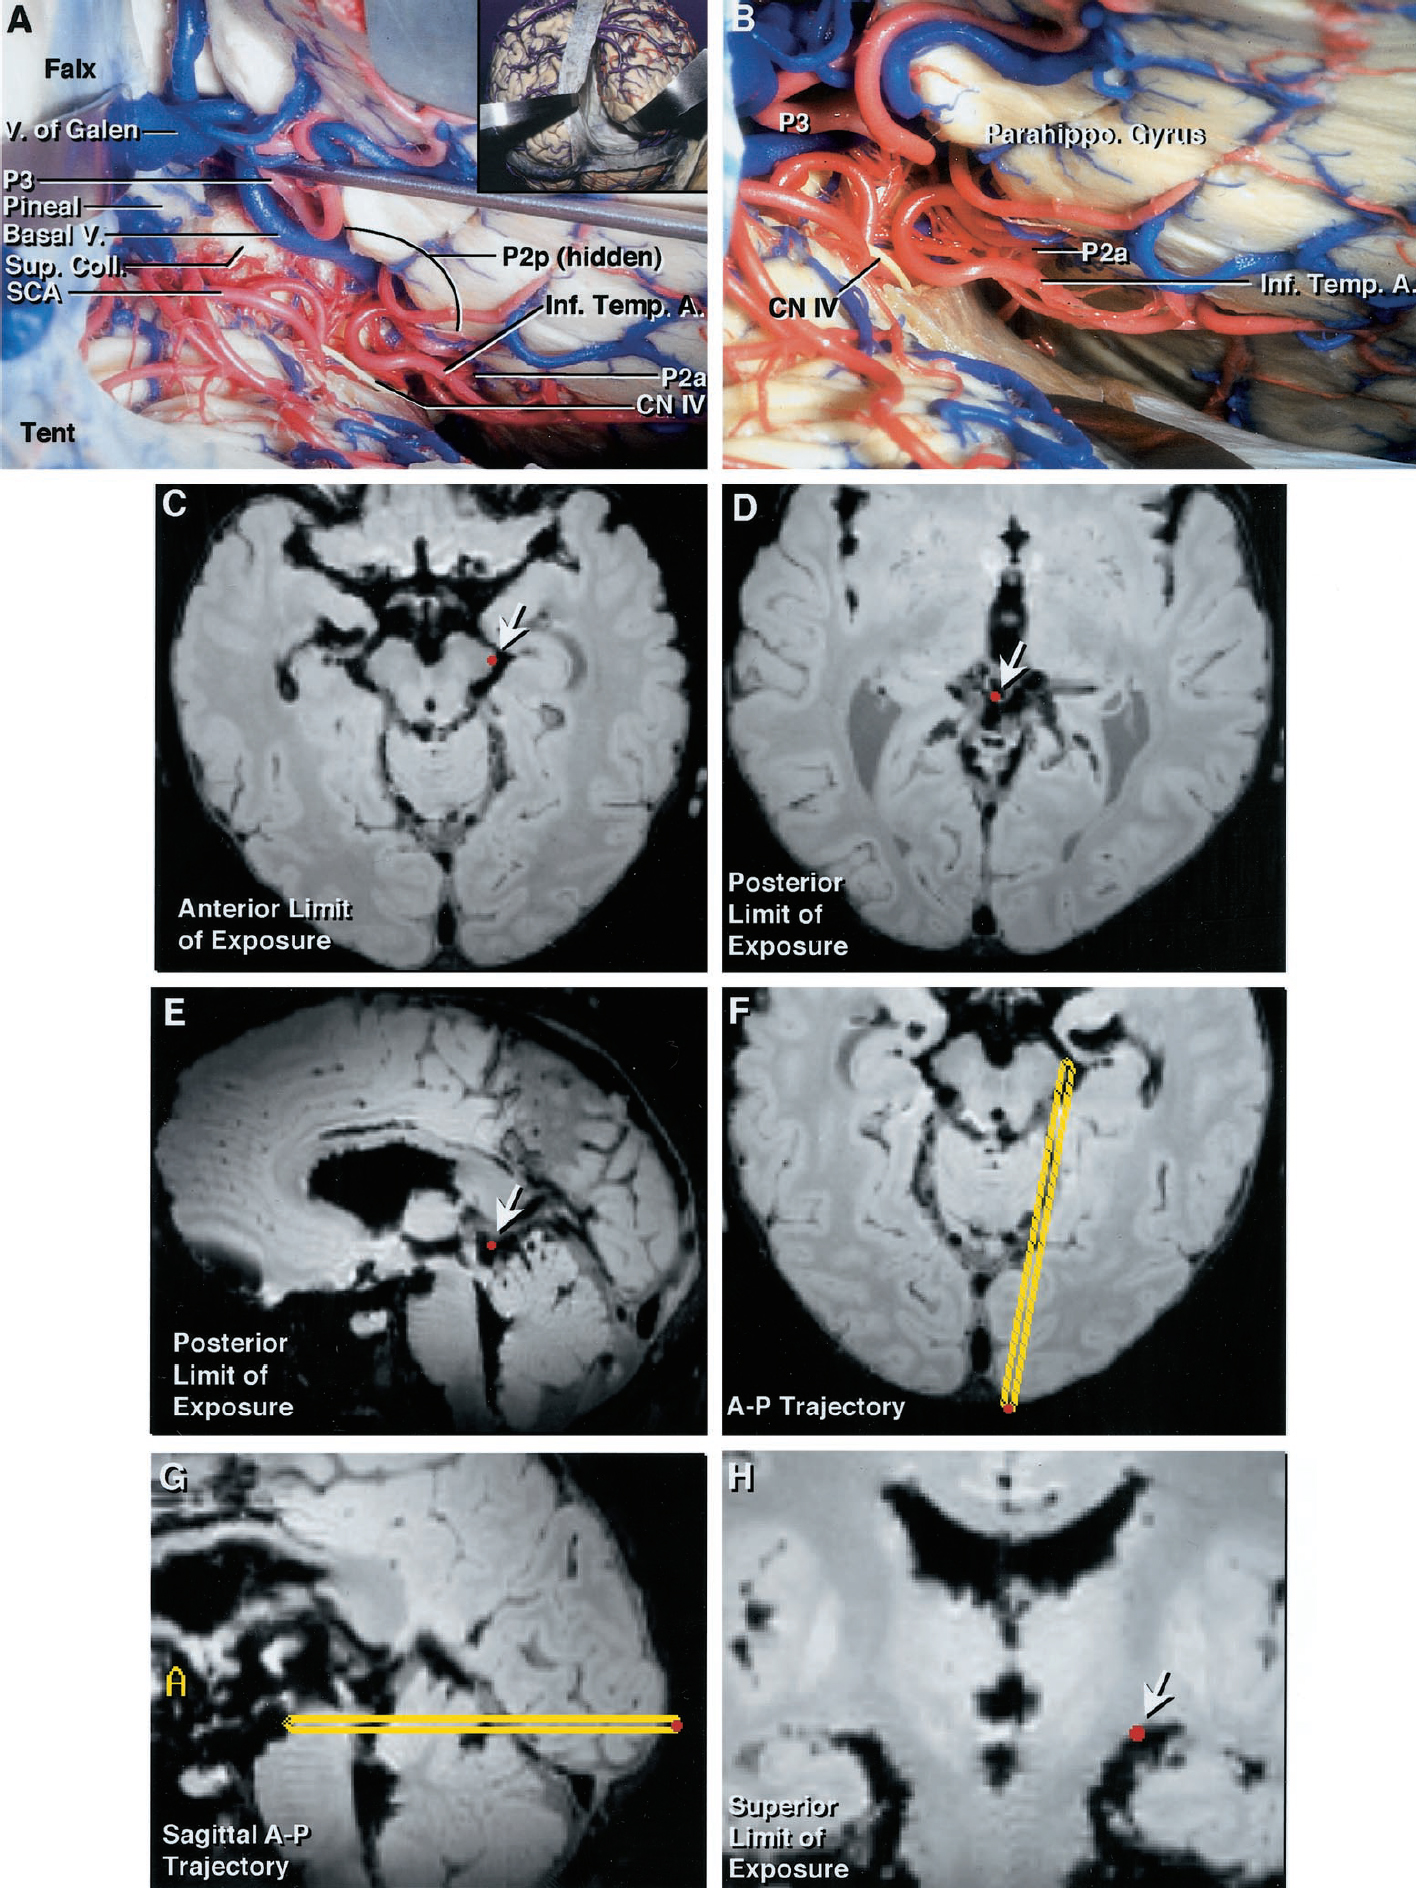 Figure 4. Right occipital transtentorial approach. A, specimen showing posterior view, in which the inset demonstrates the route of the exposure. The tentorium was divided adjacent to the straight sinus. The exposure included the P2a, P2p, P3, pineal gland, colliculi, superior cerebellar artery, basal vein and vein of Galen, trochlear nerve, and inferior temporal branches of the PCA. B, specimen showing enlarged view above the cerebellum into the ambient cistern. The approach is directed lateral to the apex of the cerebellar vermis. The P2a has ascended to be hidden above the medial edge of the parahippocampal gyrus in the upper part of the ambient cistern. The P3 re-emerges in the quadrigeminal cistern. C–G, Stealth magnetic resonance imaging scans demonstrating the limits (arrows) of exposure. C, anterior limit of exposure is the back edge of the crural cistern. D and E, approach provides excellent exposure of the quadrigeminal cistern. F, working distance to the deepest point of exposure in the six hemispheres averaged 8 cm. G, trajectory of approach to the anterior limit of exposure. H, superior limit of exposure in ambient cistern. Basal V., basal vein; CN IV, trochlear nerve; Inf. Temp. A., inferior temporal artery; Parahippo. Gyrus, parahippocampal gyrus; Pineal, pineal gland; SCA, superior cerebellar artery; Sup. Col., superior colliculus; Tent., tentorium; V. of Galen, vein of Galen. (Images courtesy of AL Rhoton, Jr.)